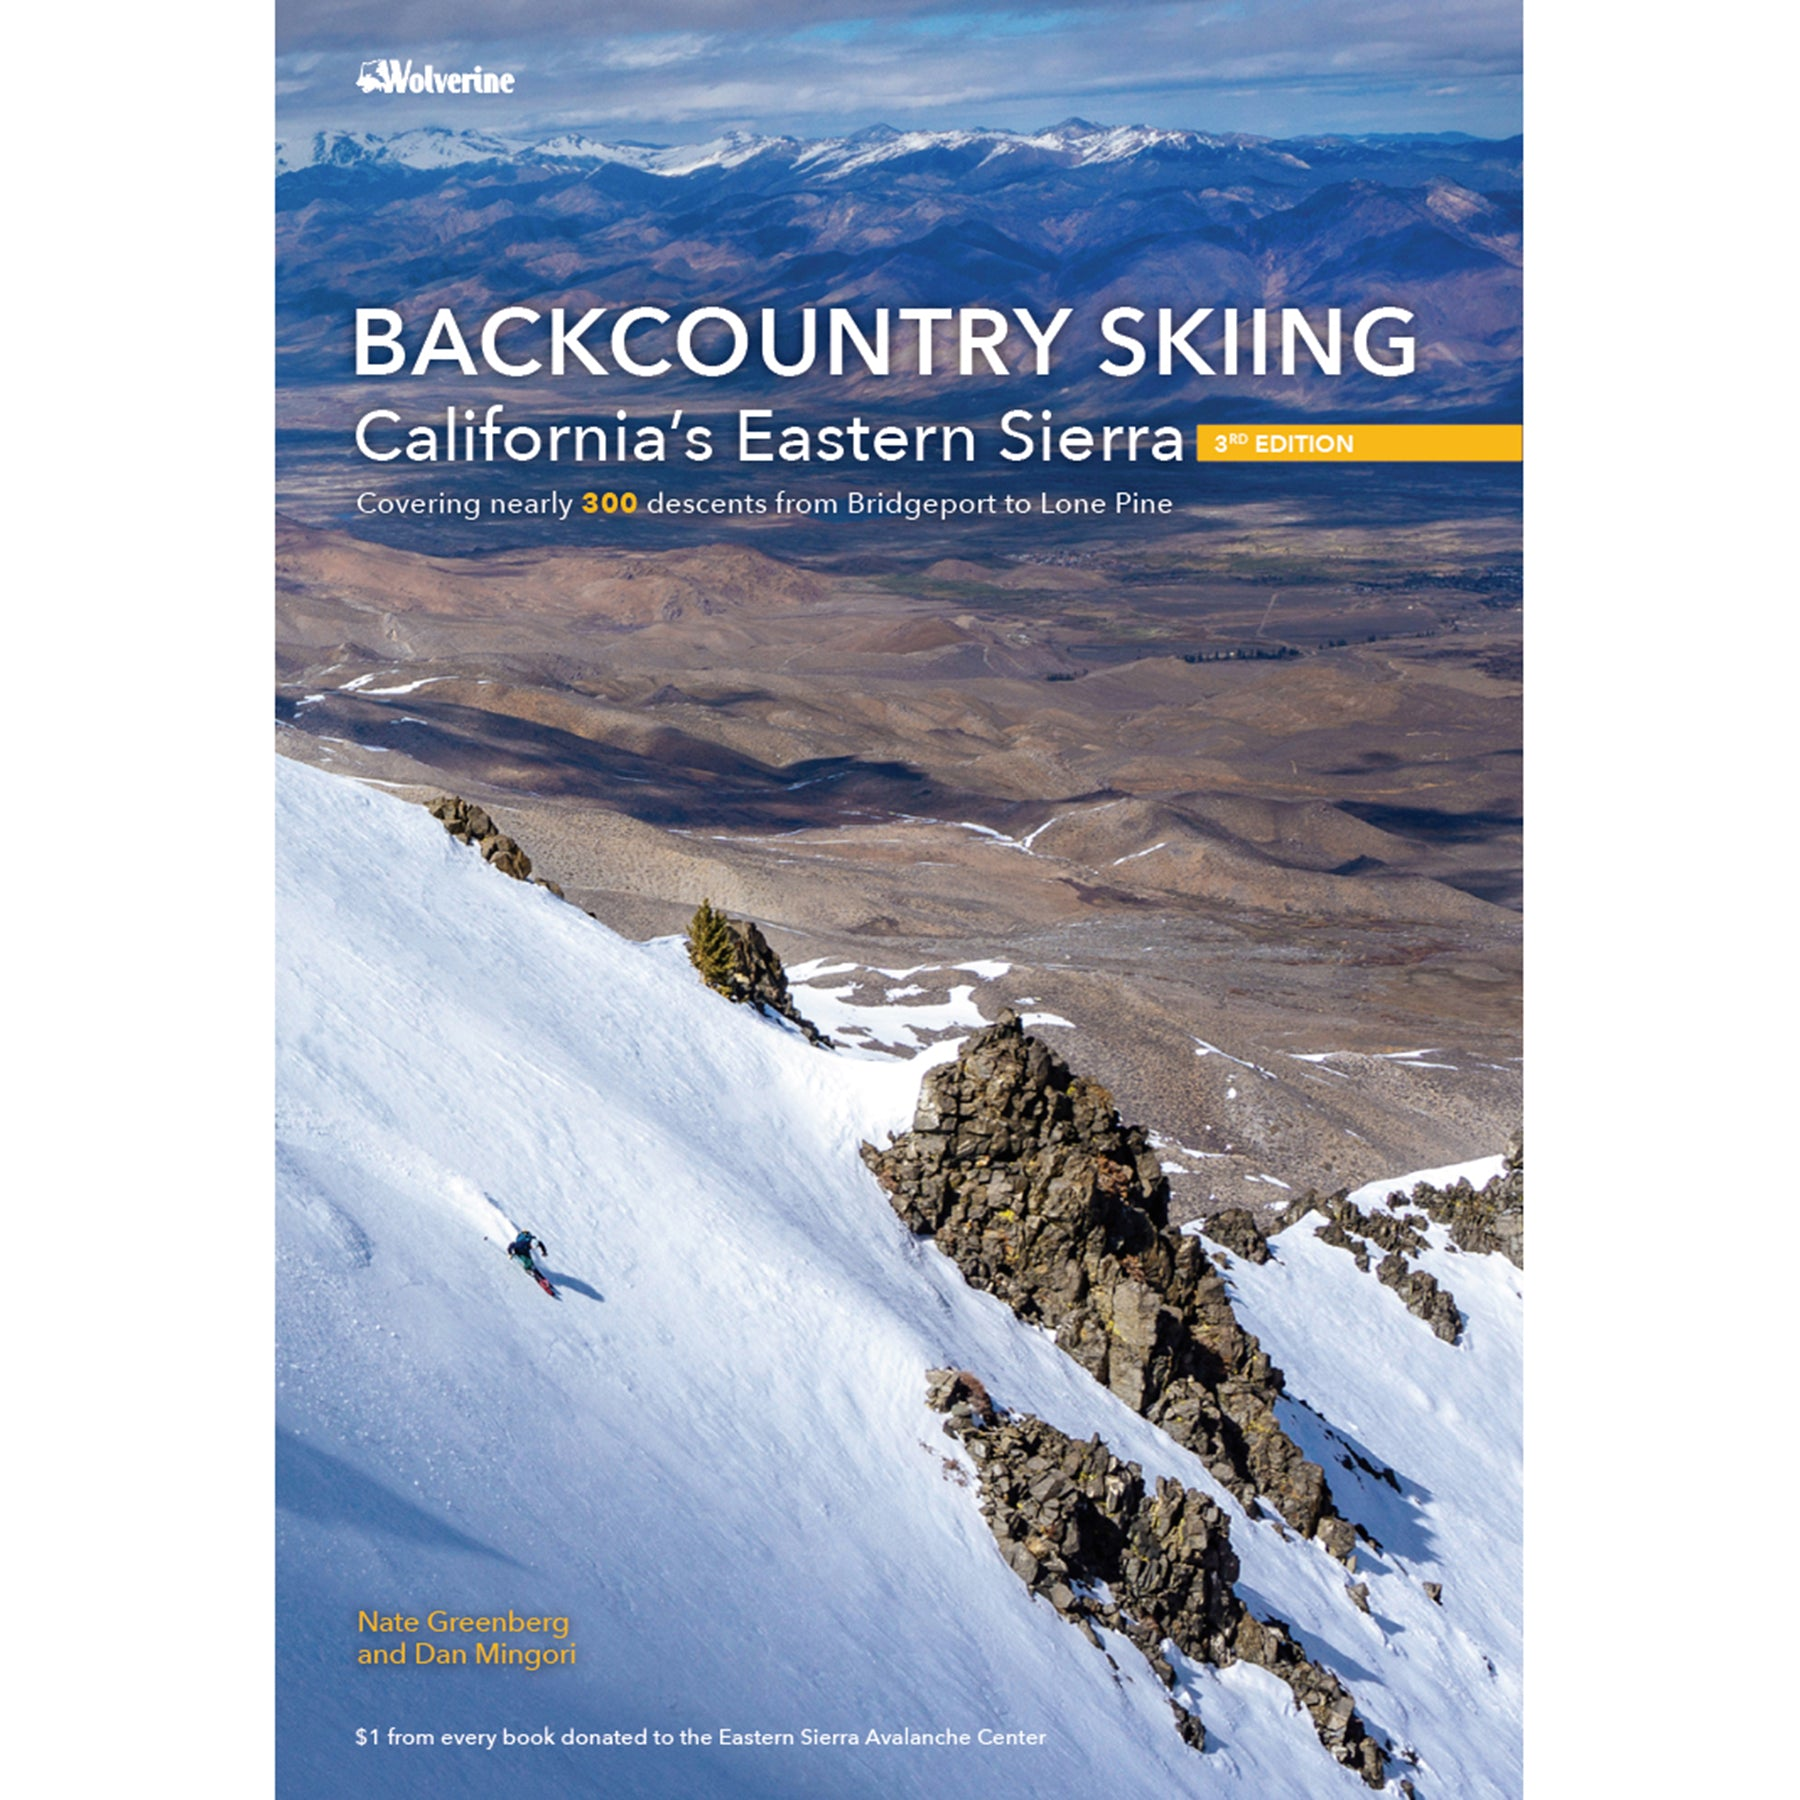 the cover of the backcountry skiing in the eastern sierra guidebook